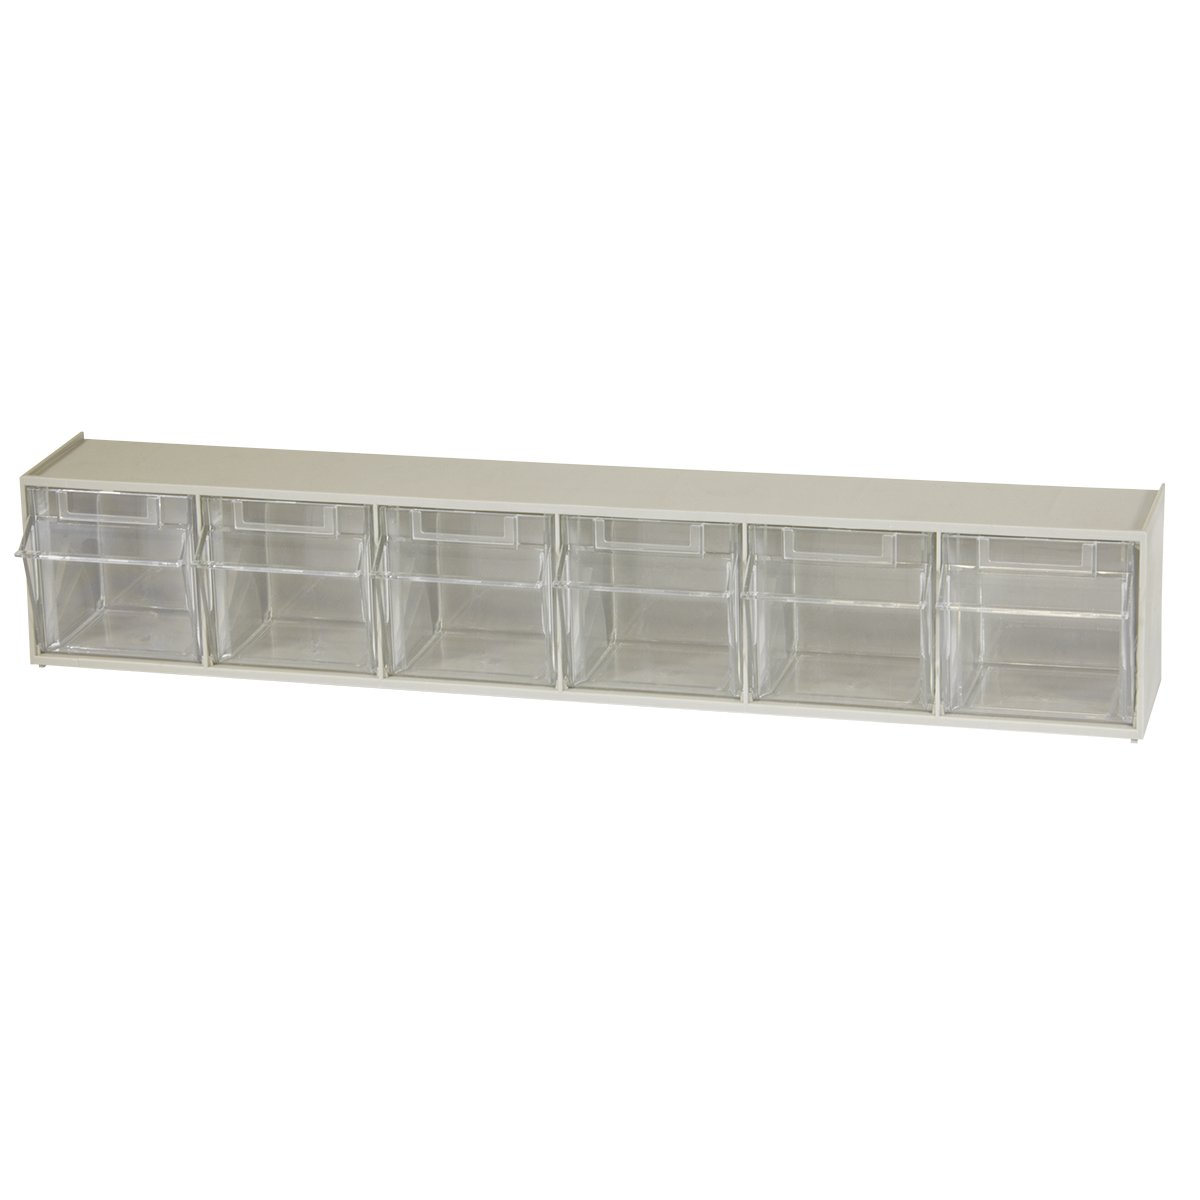 Akro-Mils 06706 TiltView Horizontal Plastic Storage System with Six Tilt Out Bins, 23-5/8-Inch Wide by 4-1/2-Inch High by 3-3/4-Inch Deep, Stone by Akro-Mils